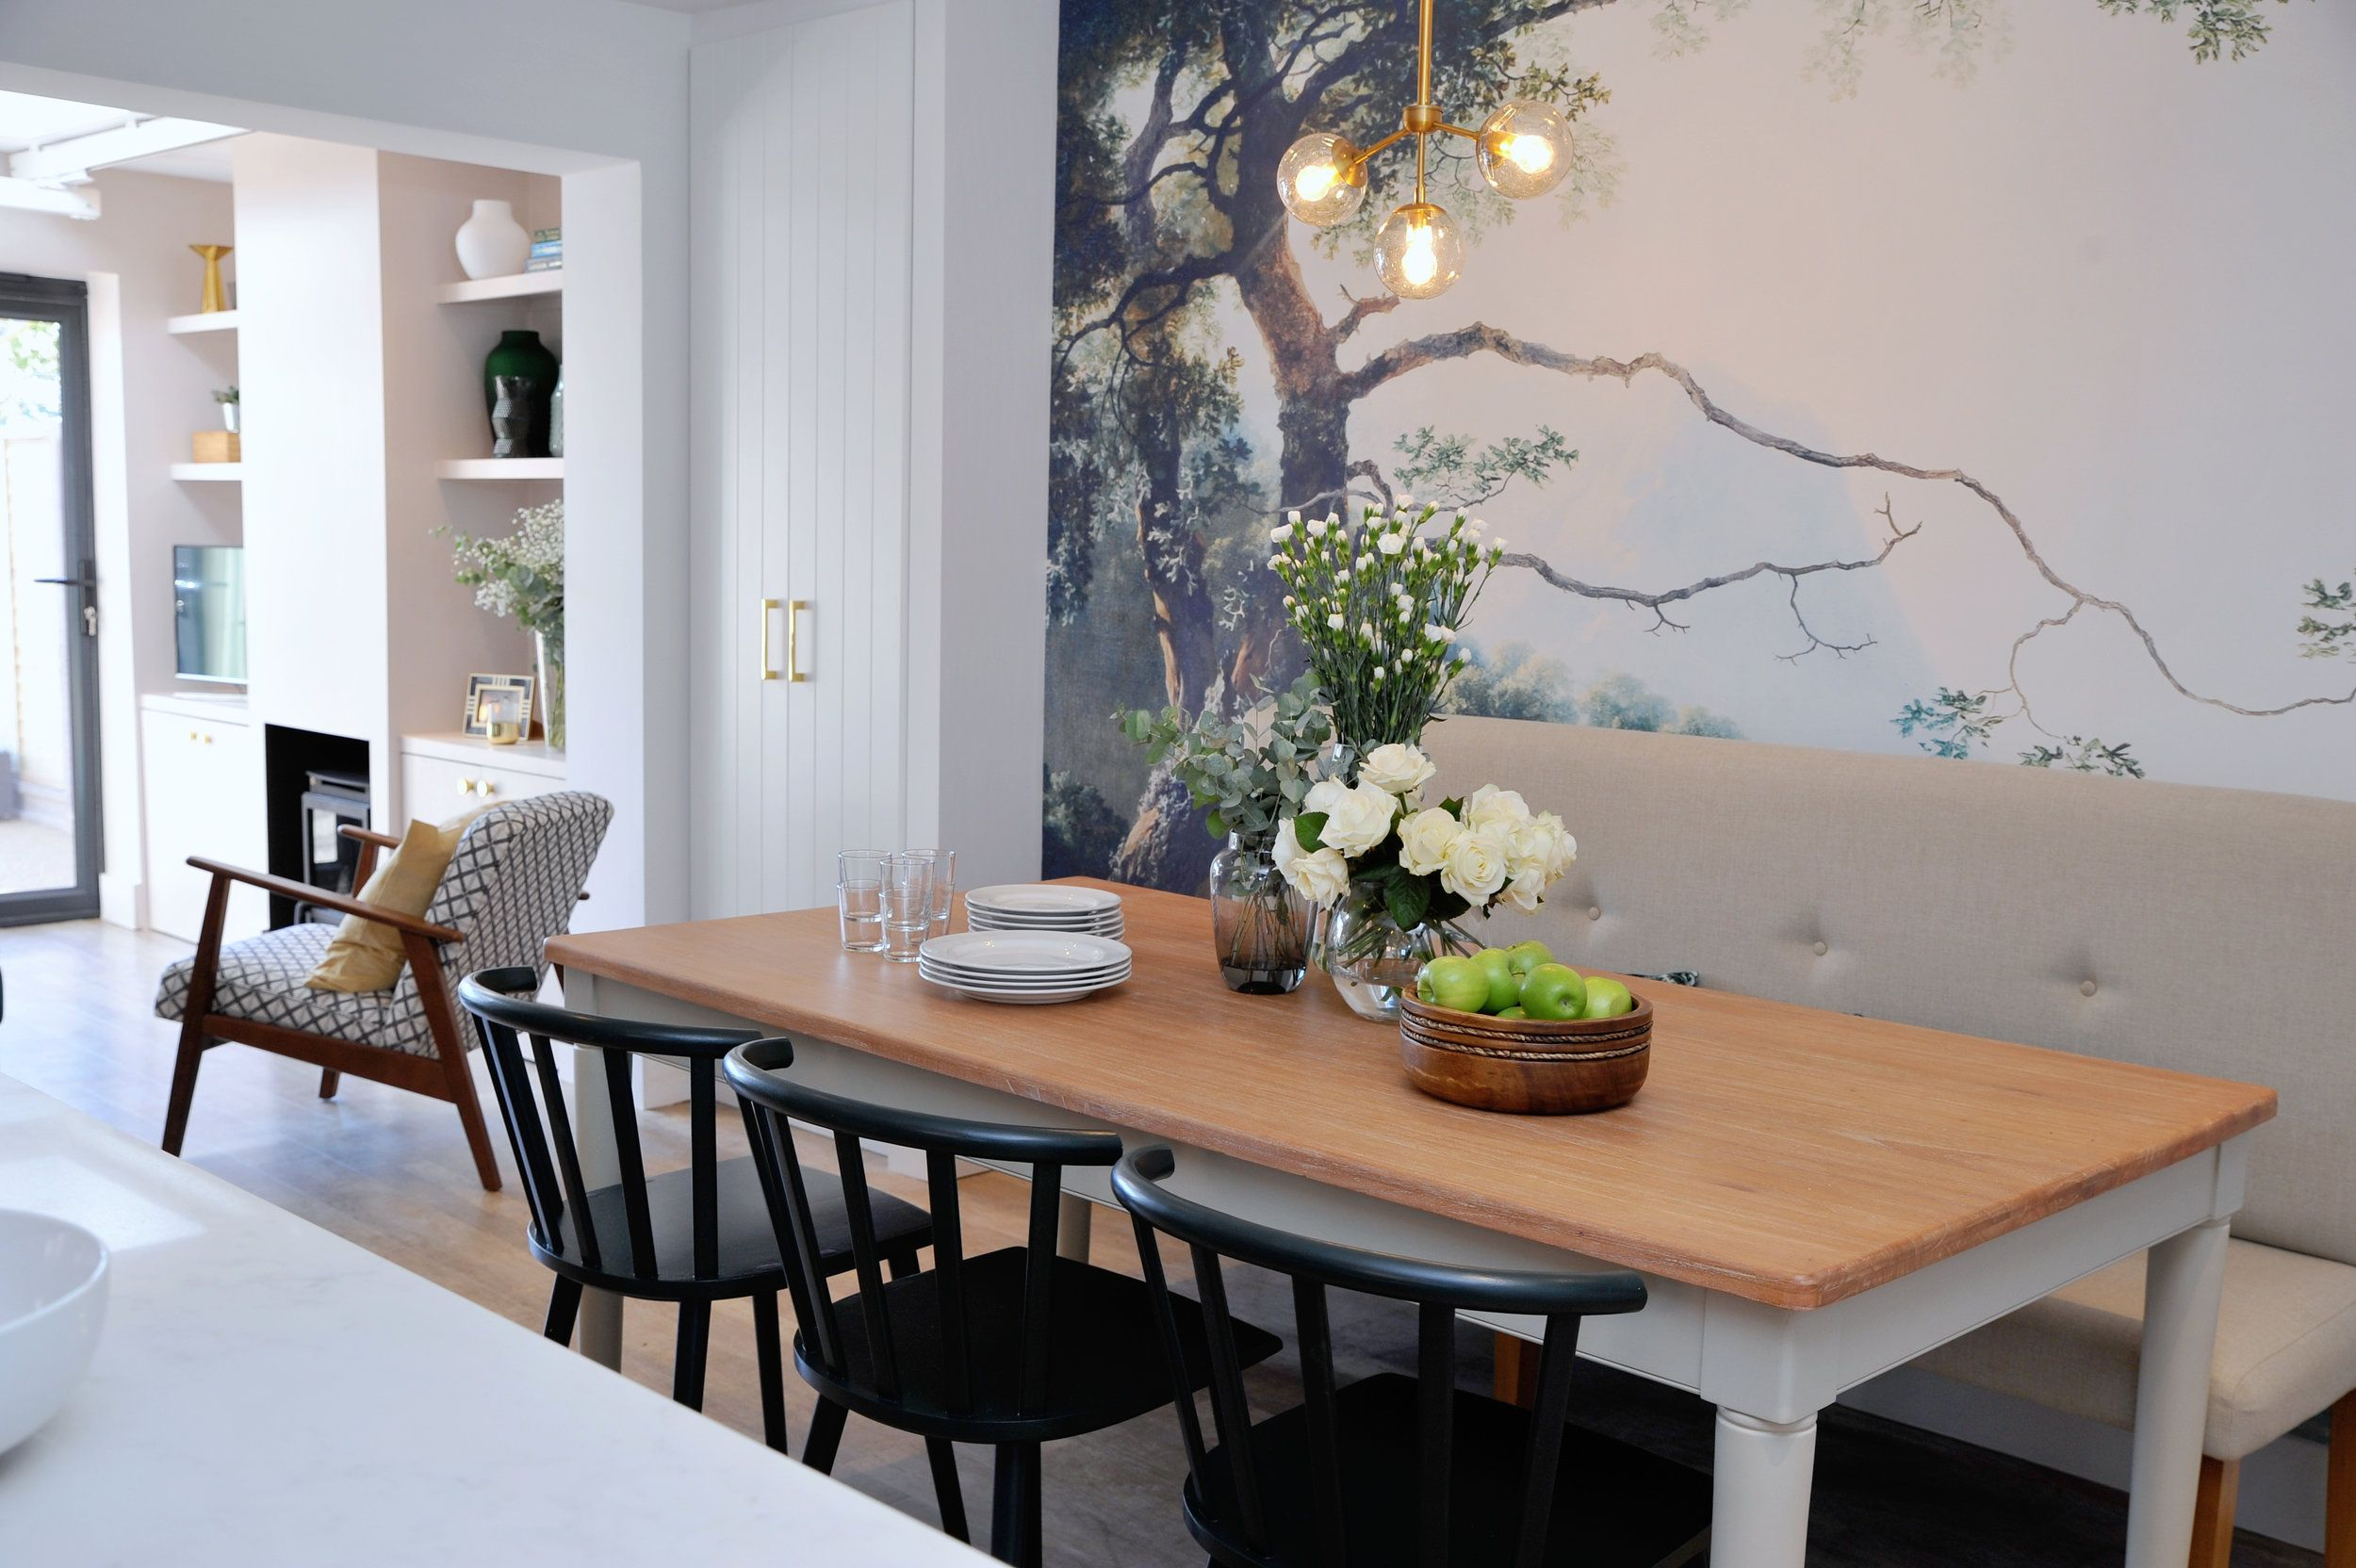 Dining room with feature wall and upholstered bench. For